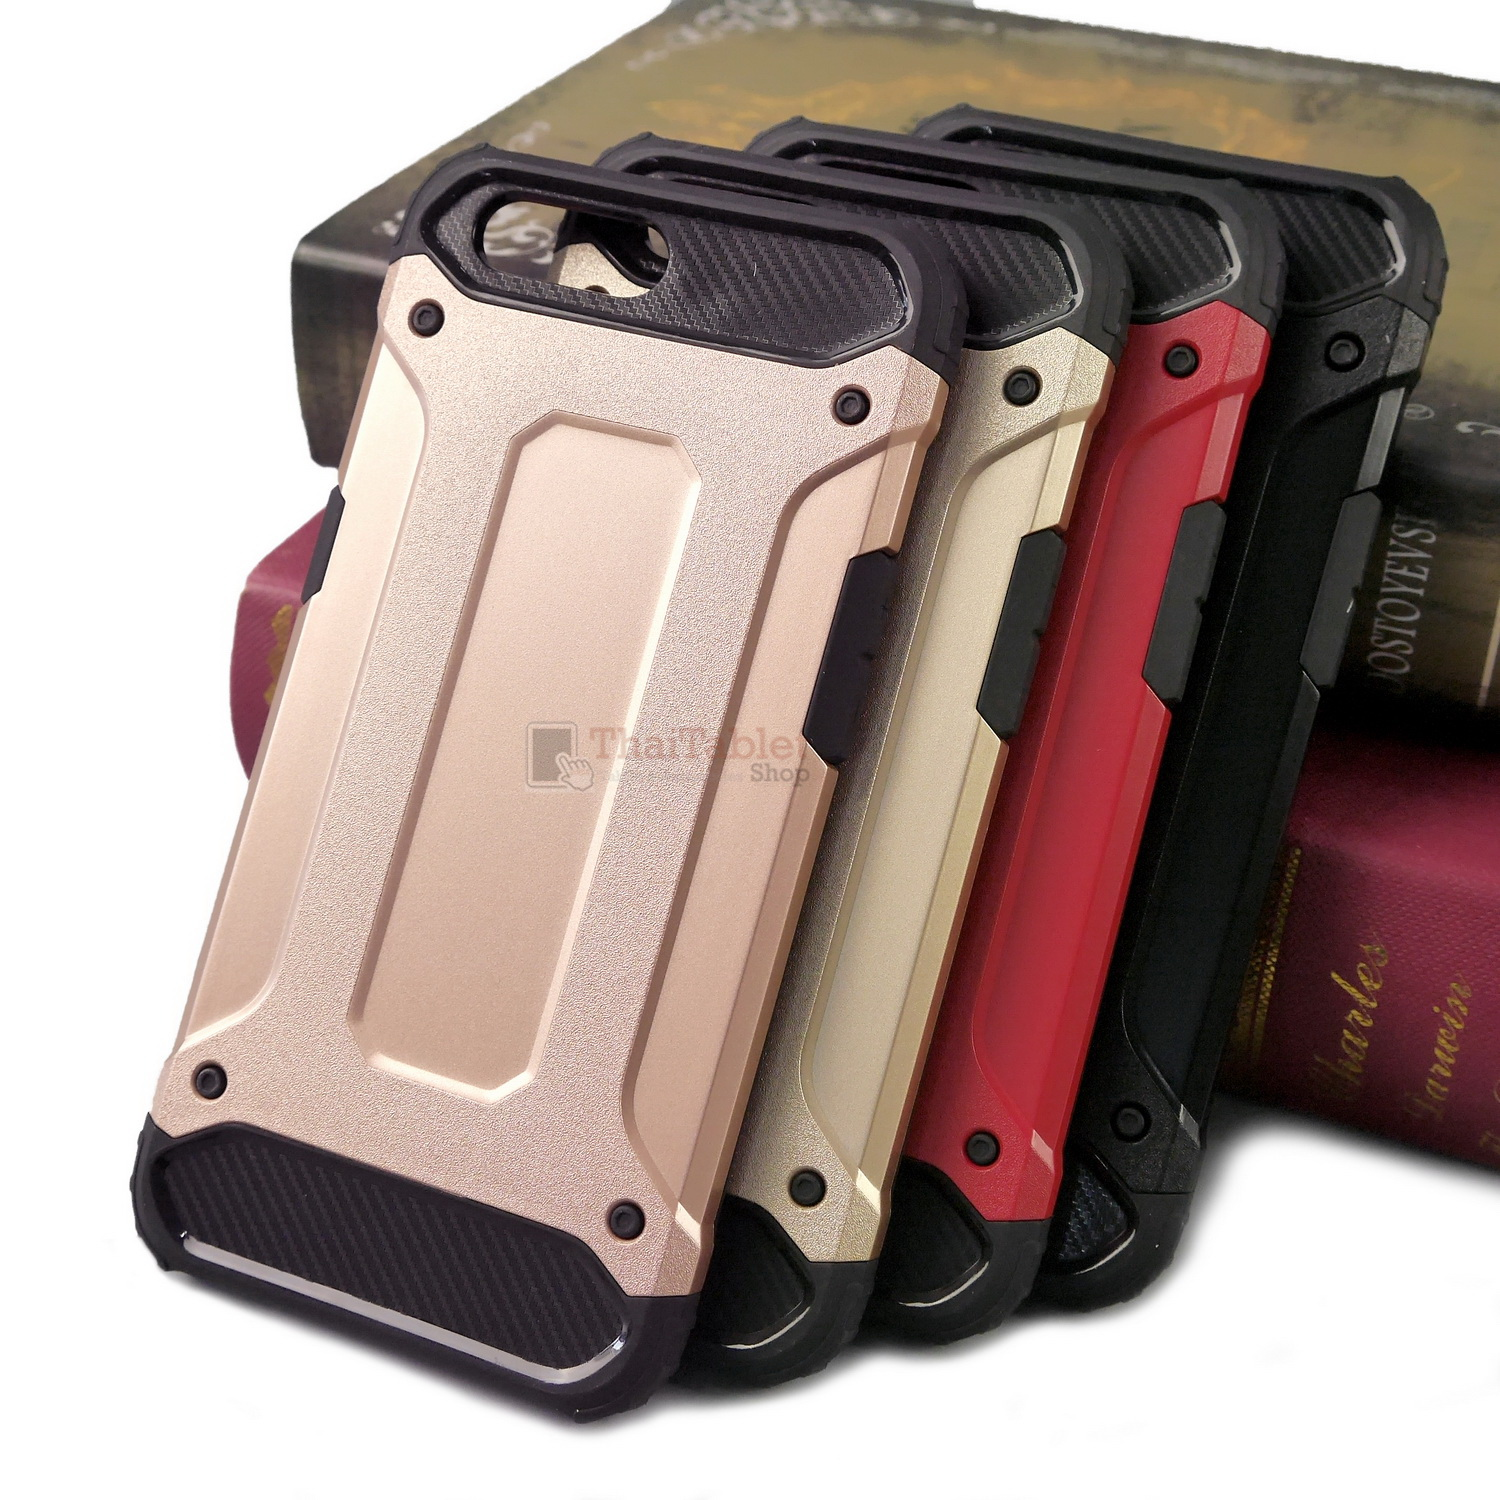 Rugged Hybrid Dual Layer Armor Case Cover For OPPO R11